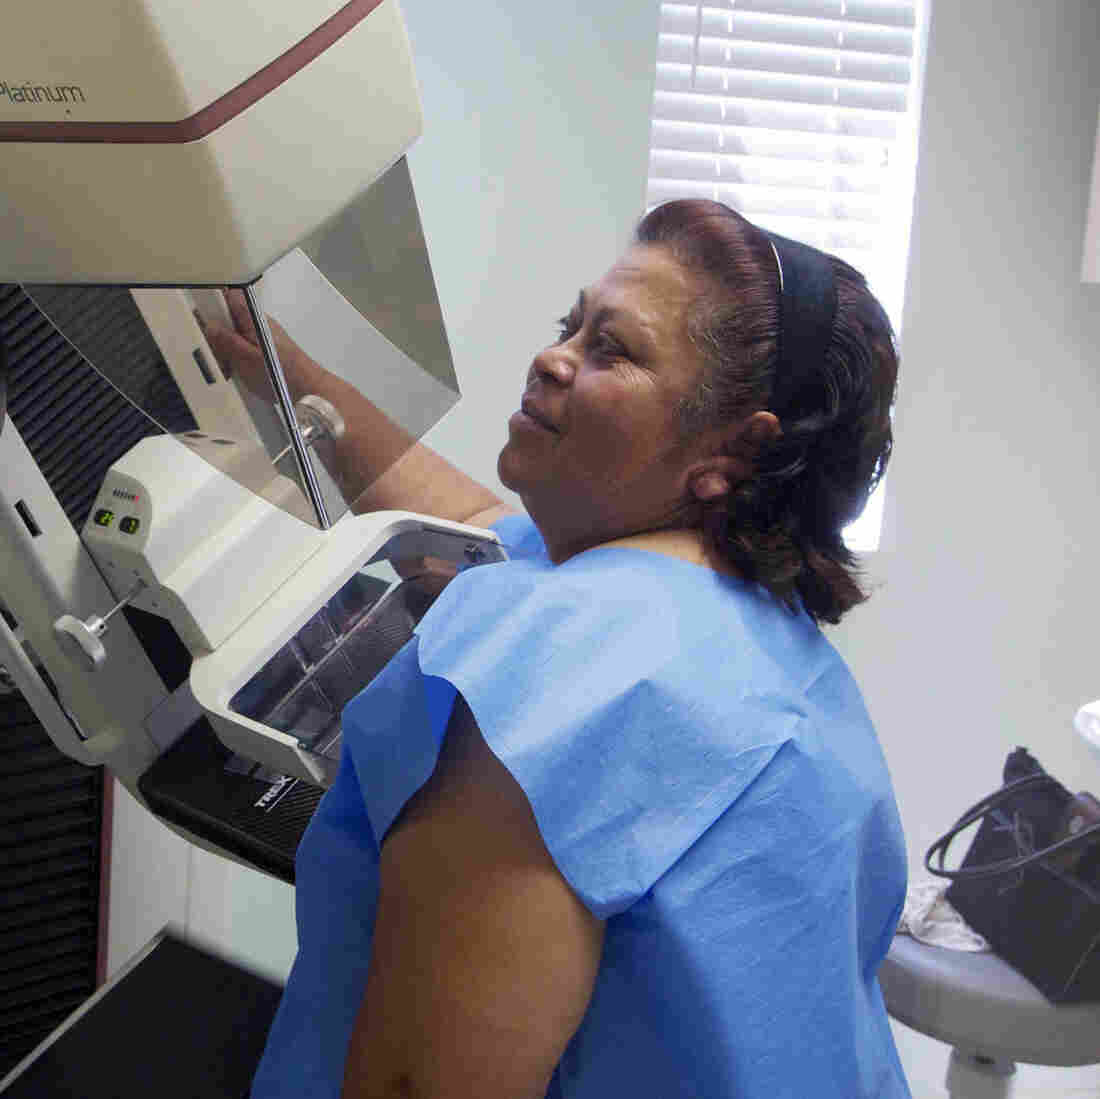 A mammographer prepares a screen-film mammography test for patient Alicia Maldonado at a hospital in Los Angeles.